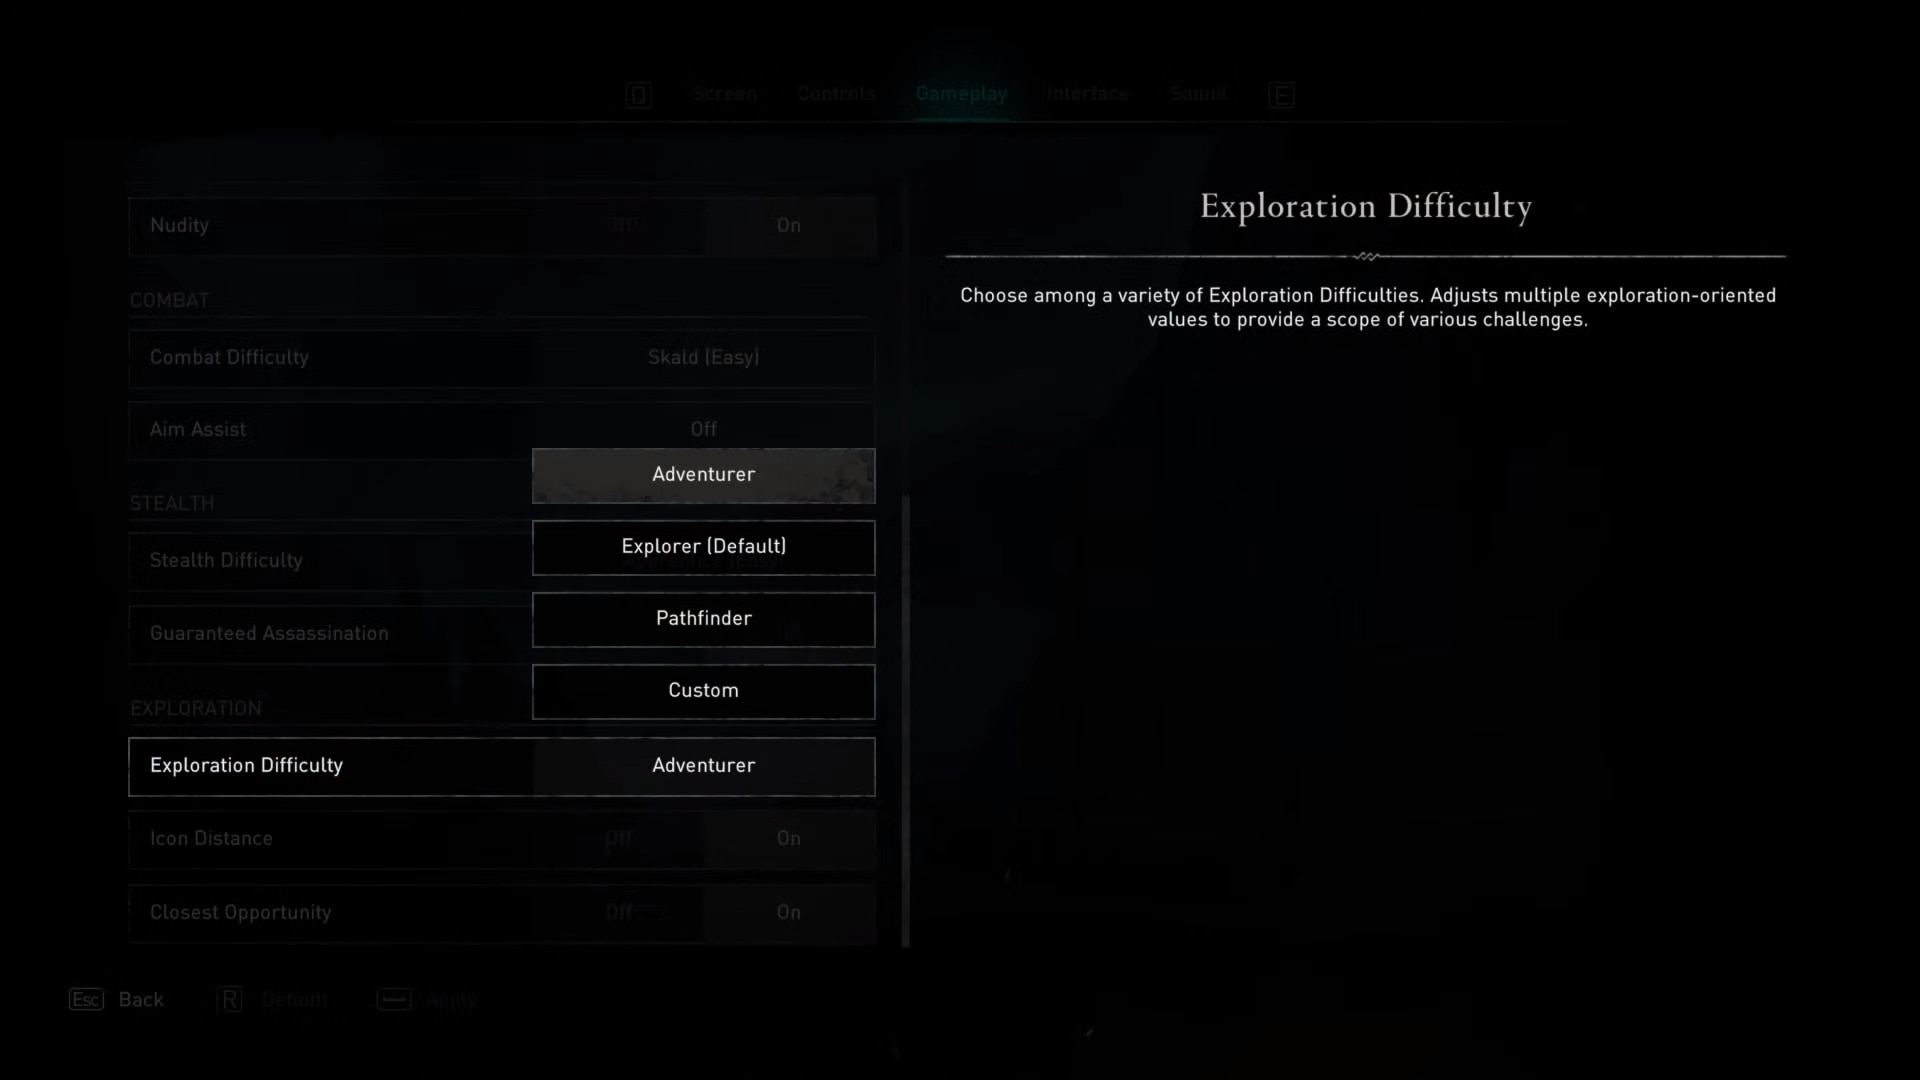 Exploration difficulty option in the gameplay options of Assassin's Creed Valhalla